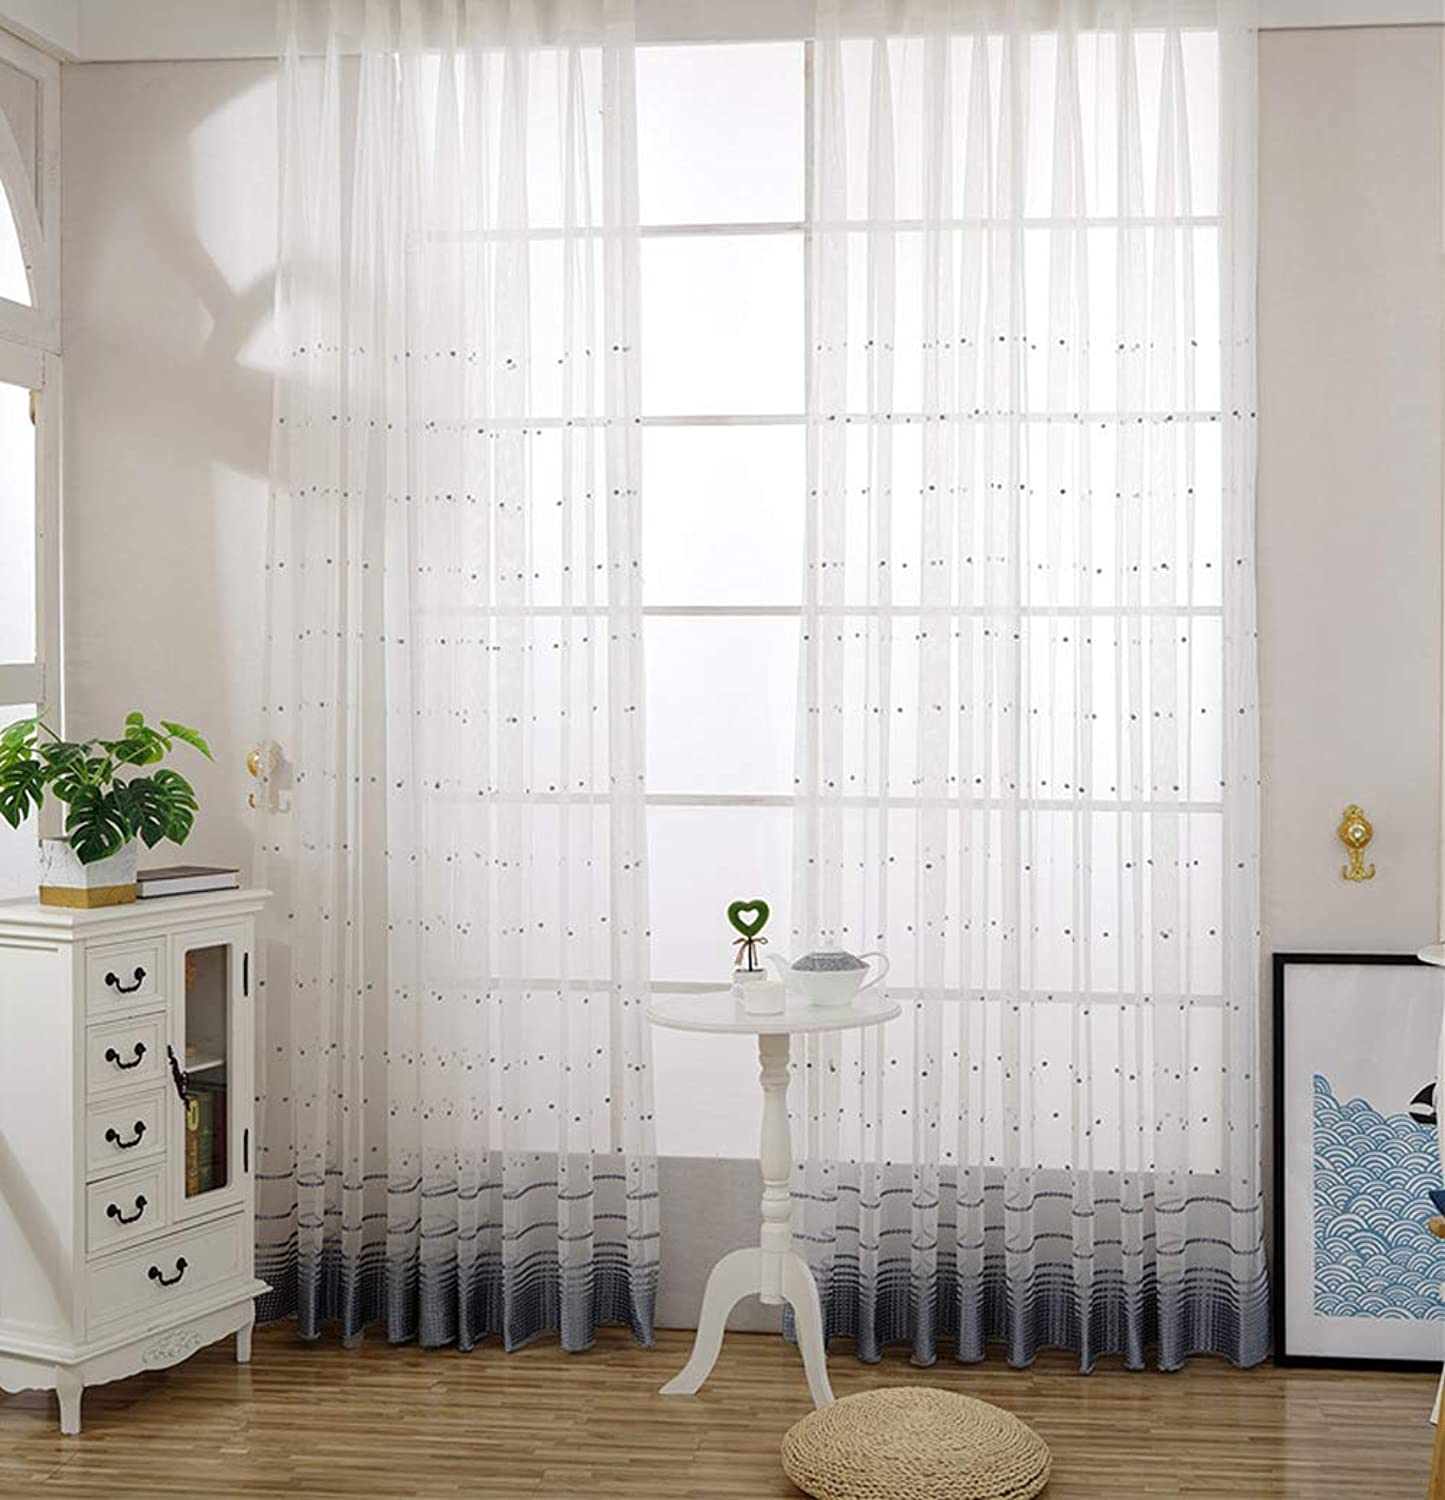 ABCWOO Modern Sheer Tulle Window Curtains Rod Pocket Polka Dots Embroidered Design Home Decorative Gauze Treatments Drapes for Living Room(1 Panel, W 50 x L 102 inch, White)